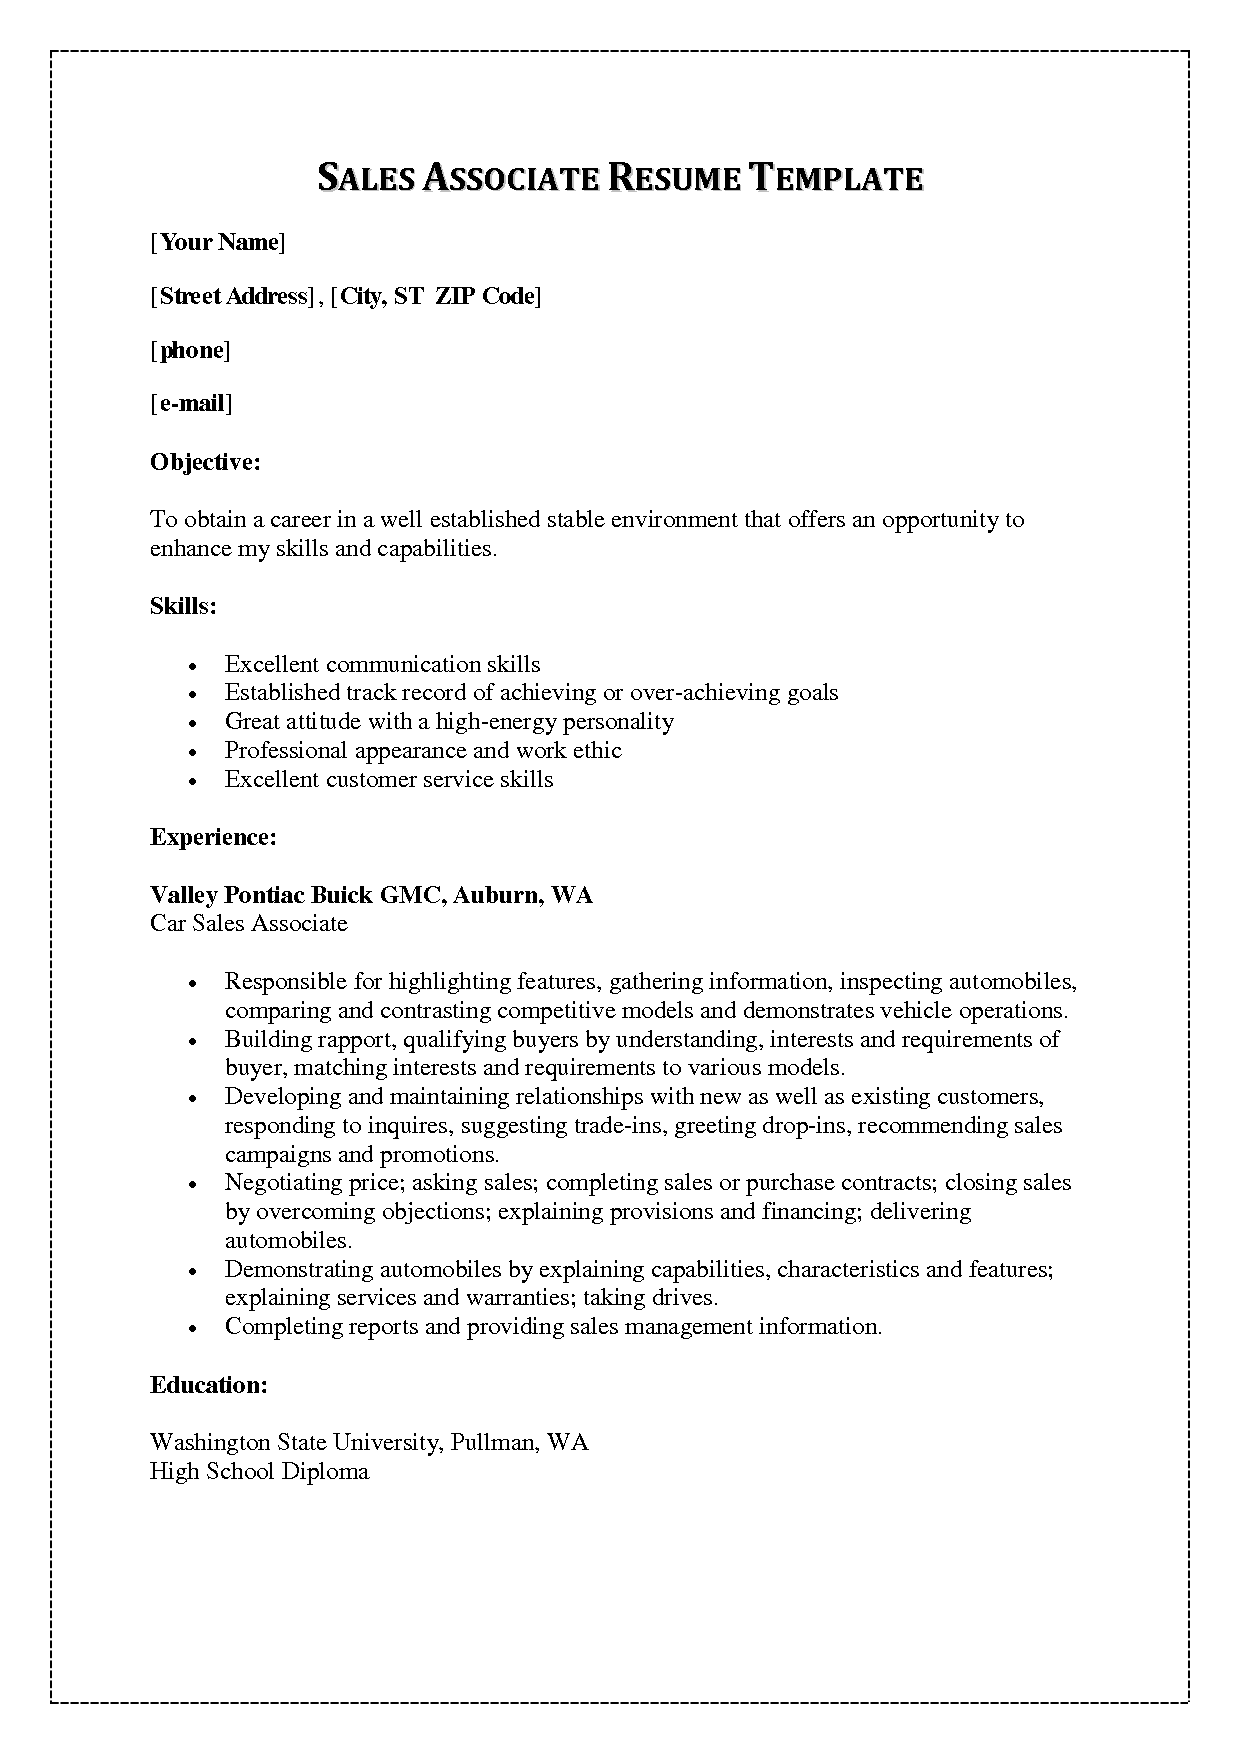 samples of qualifications on resume